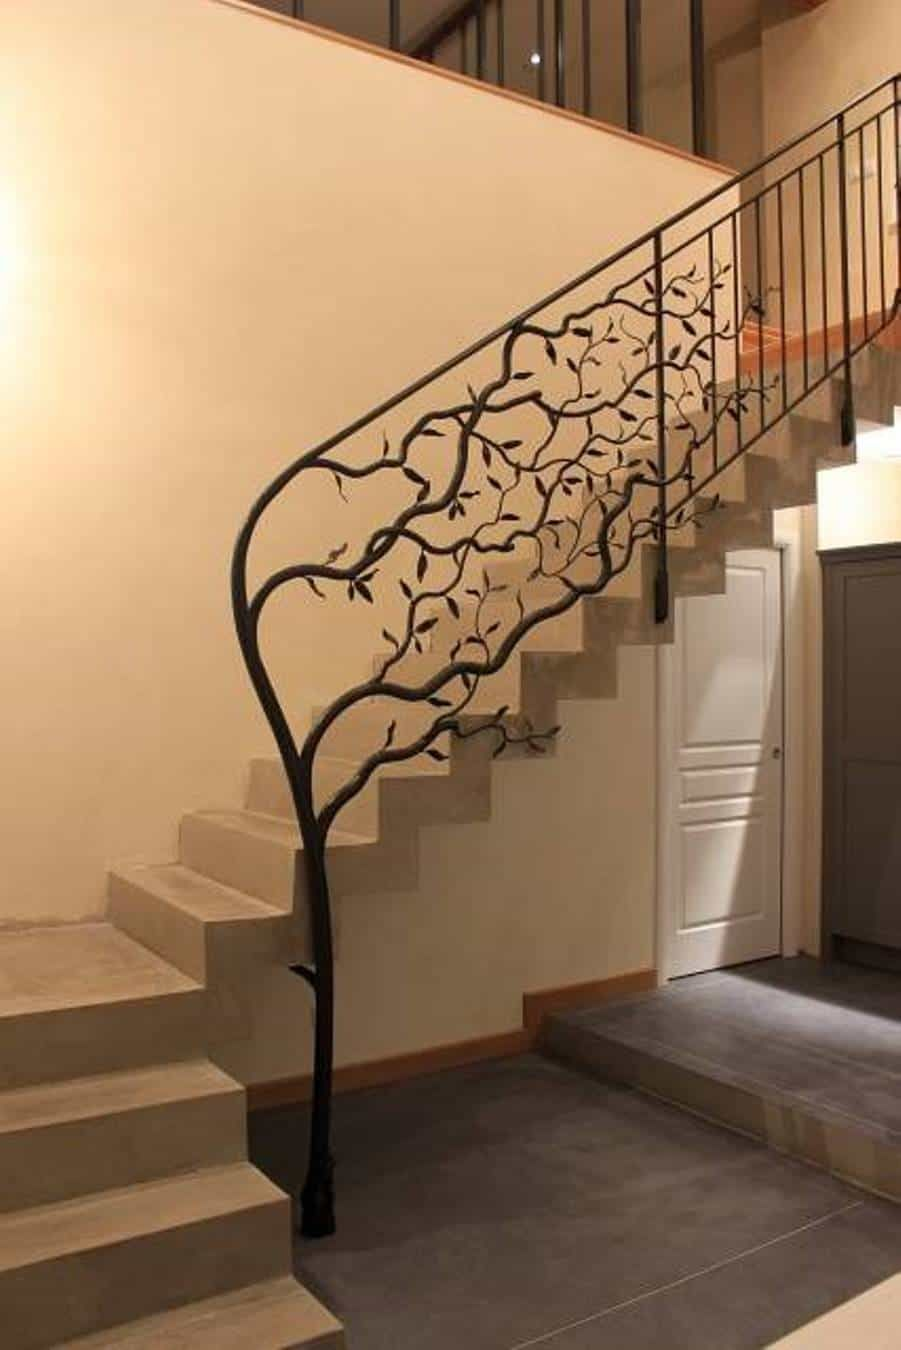 Landscaping And Outdoor Building Indoor Handrail Stairs | Metal Handrails For Indoor Stairs | Baluster | Indoor Outdoor | Staircase Remodel | Stainless Steel | Stair Treads